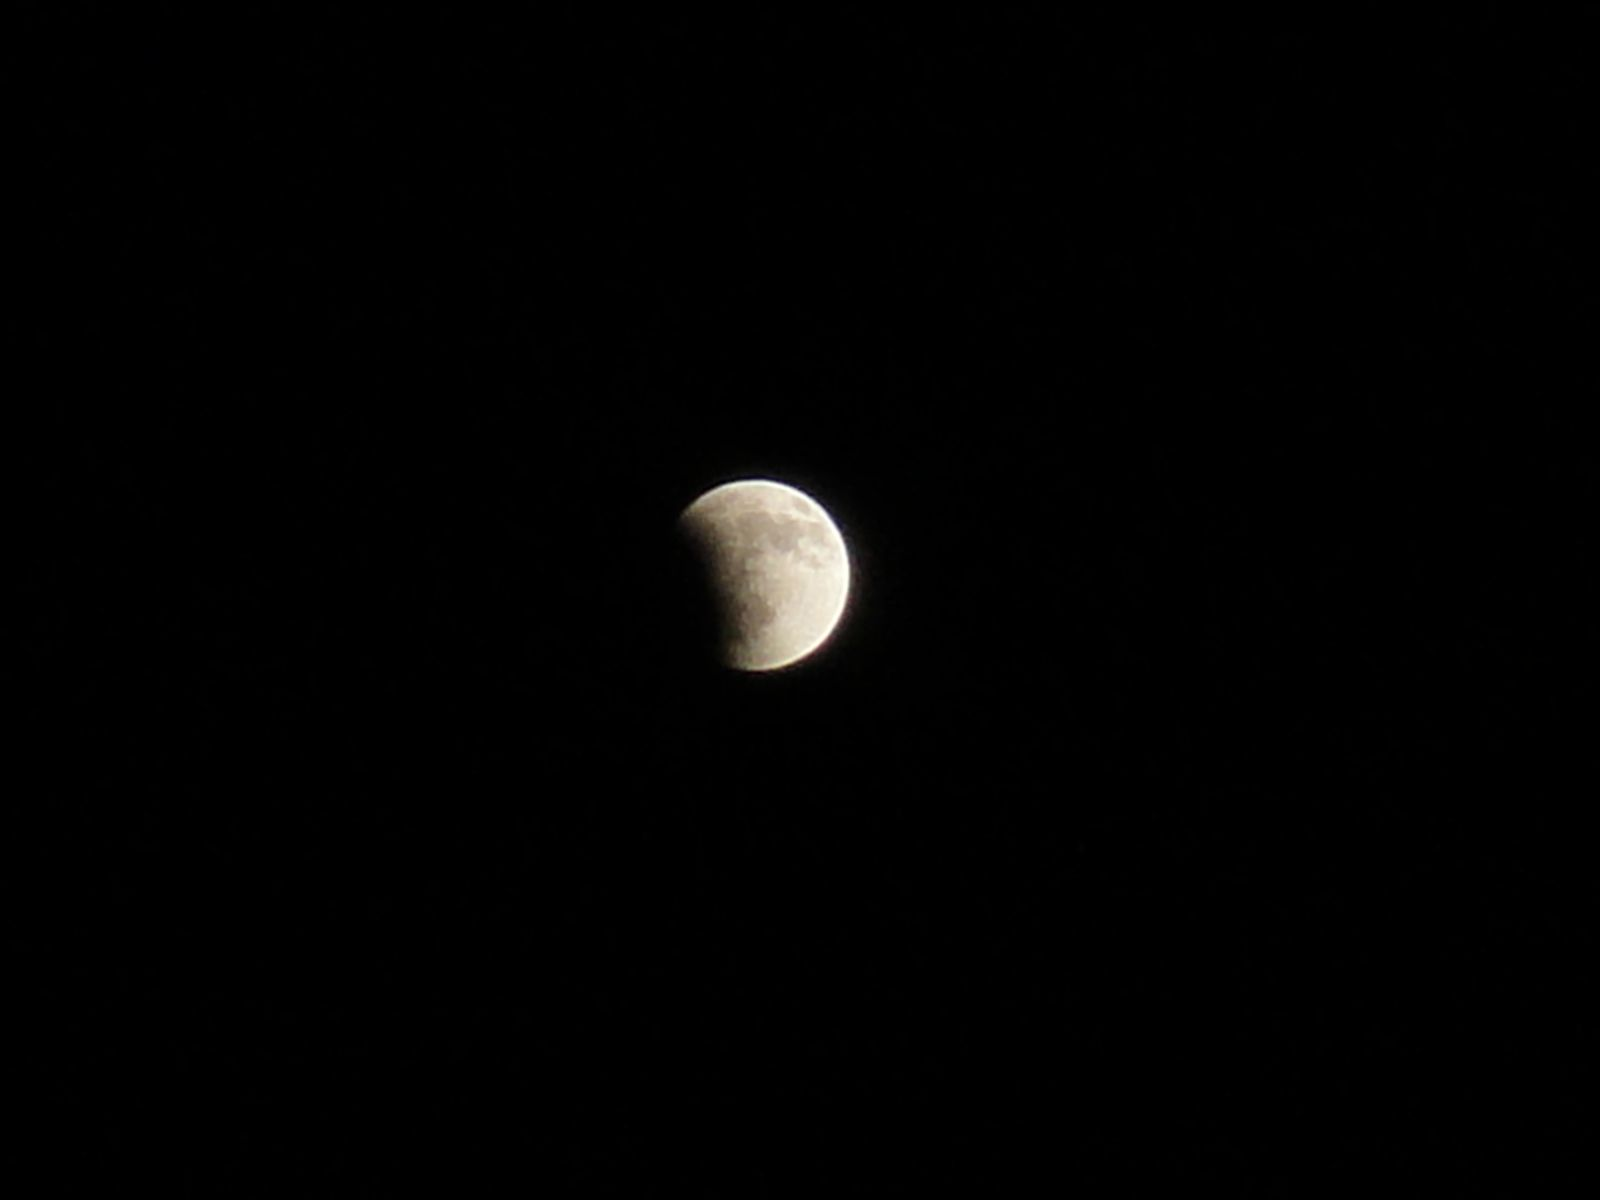 lunar_eclipse_023.jpg